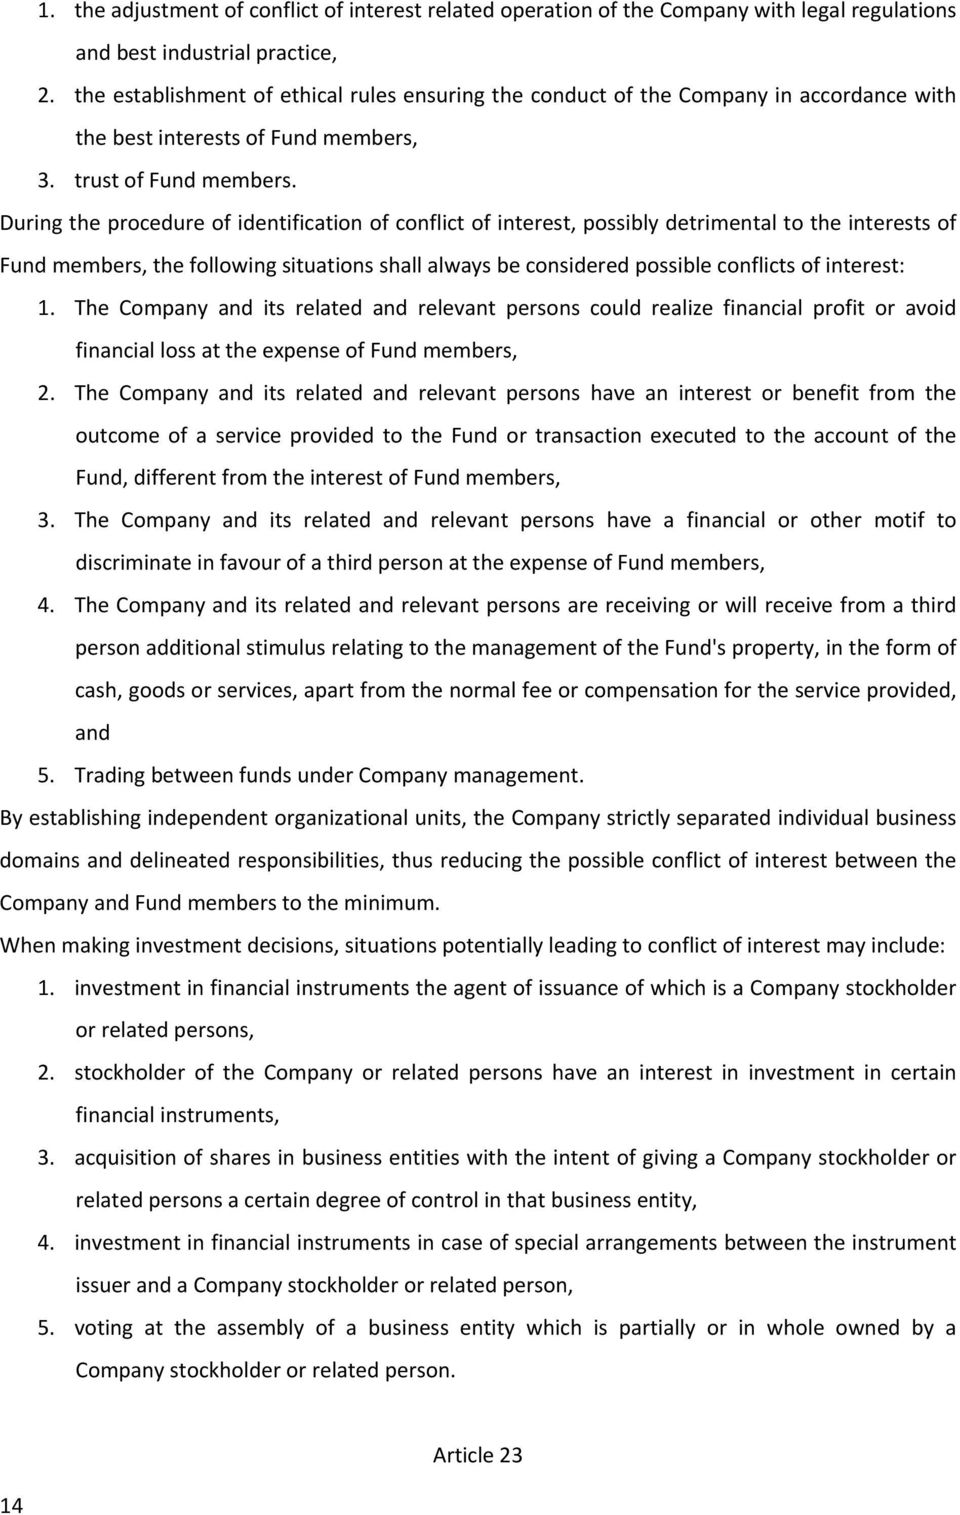 During the procedure of identification of conflict of interest, possibly detrimental to the interests of Fund members, the following situations shall always be considered possible conflicts of